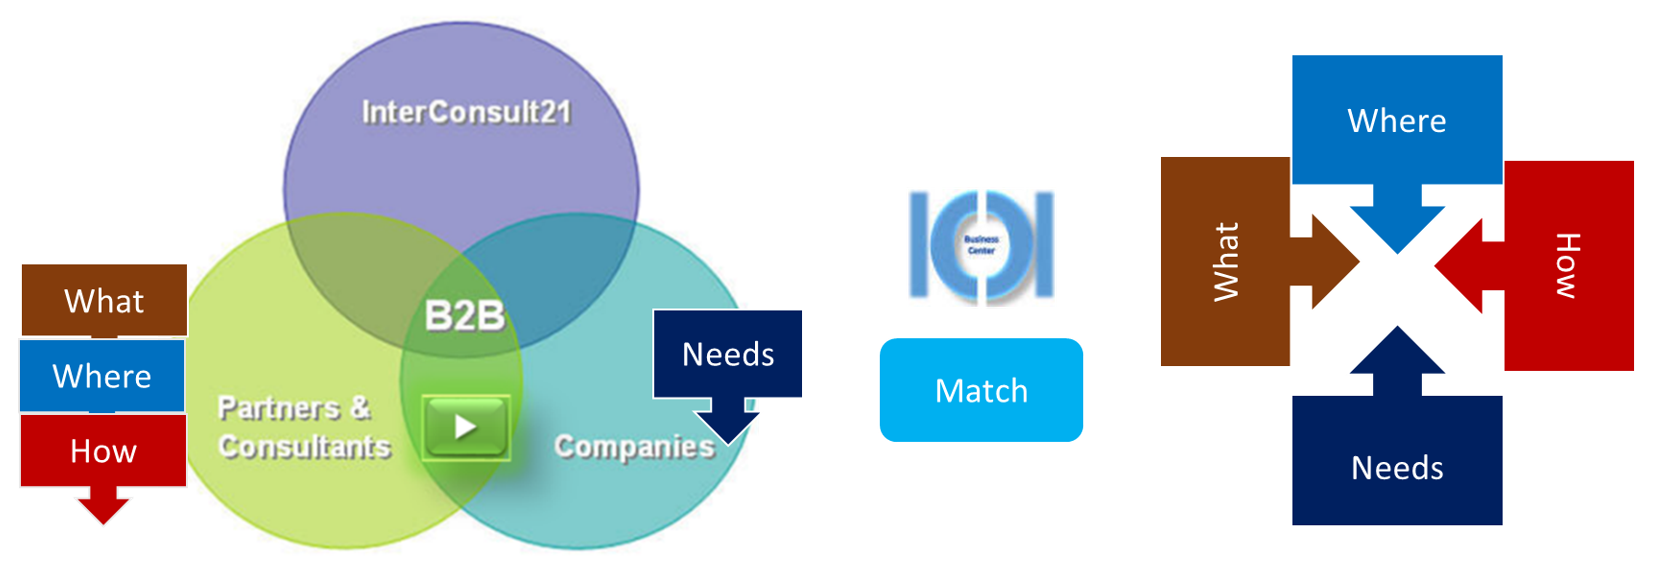 Matching Consultants Pool with Companies need.